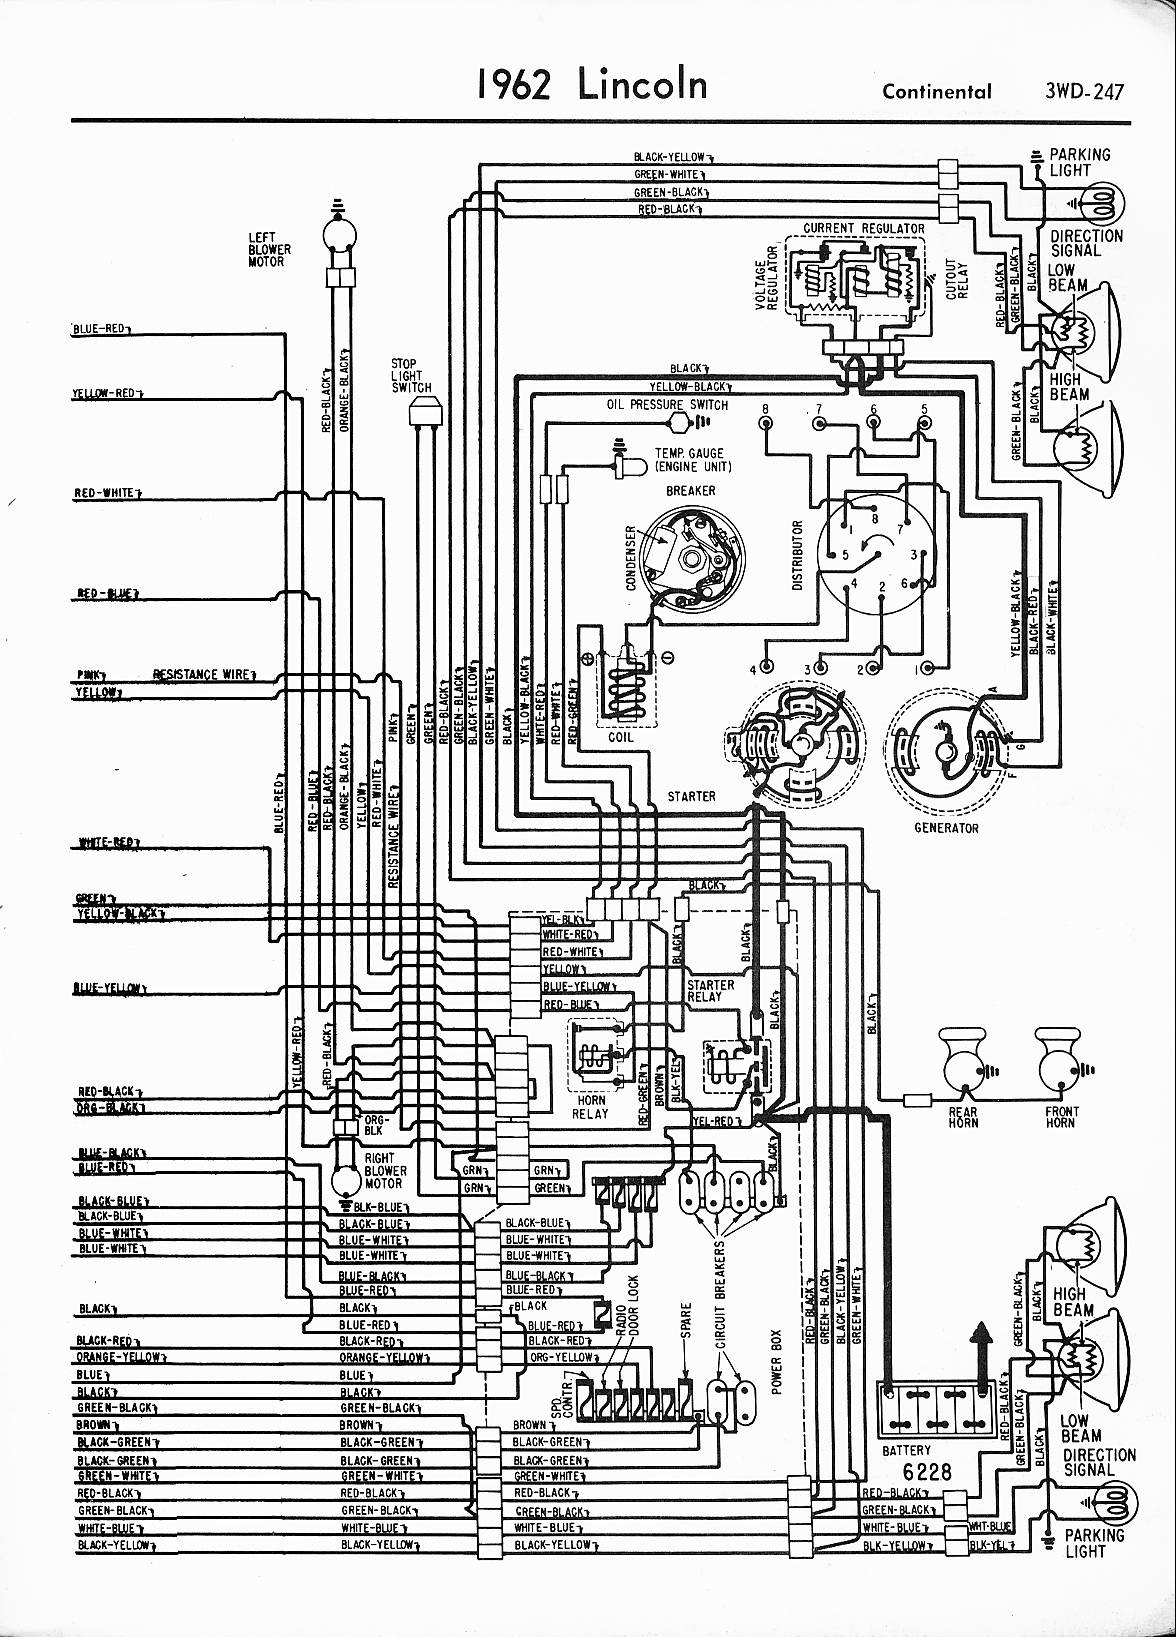 1954 Lincoln Wiring Diagram Guide And Troubleshooting Of 1998 Continental Fuse Box 1996 Ignition Coil Library Rh 87 Muehlwald De 2000 Navigator Engine Electric